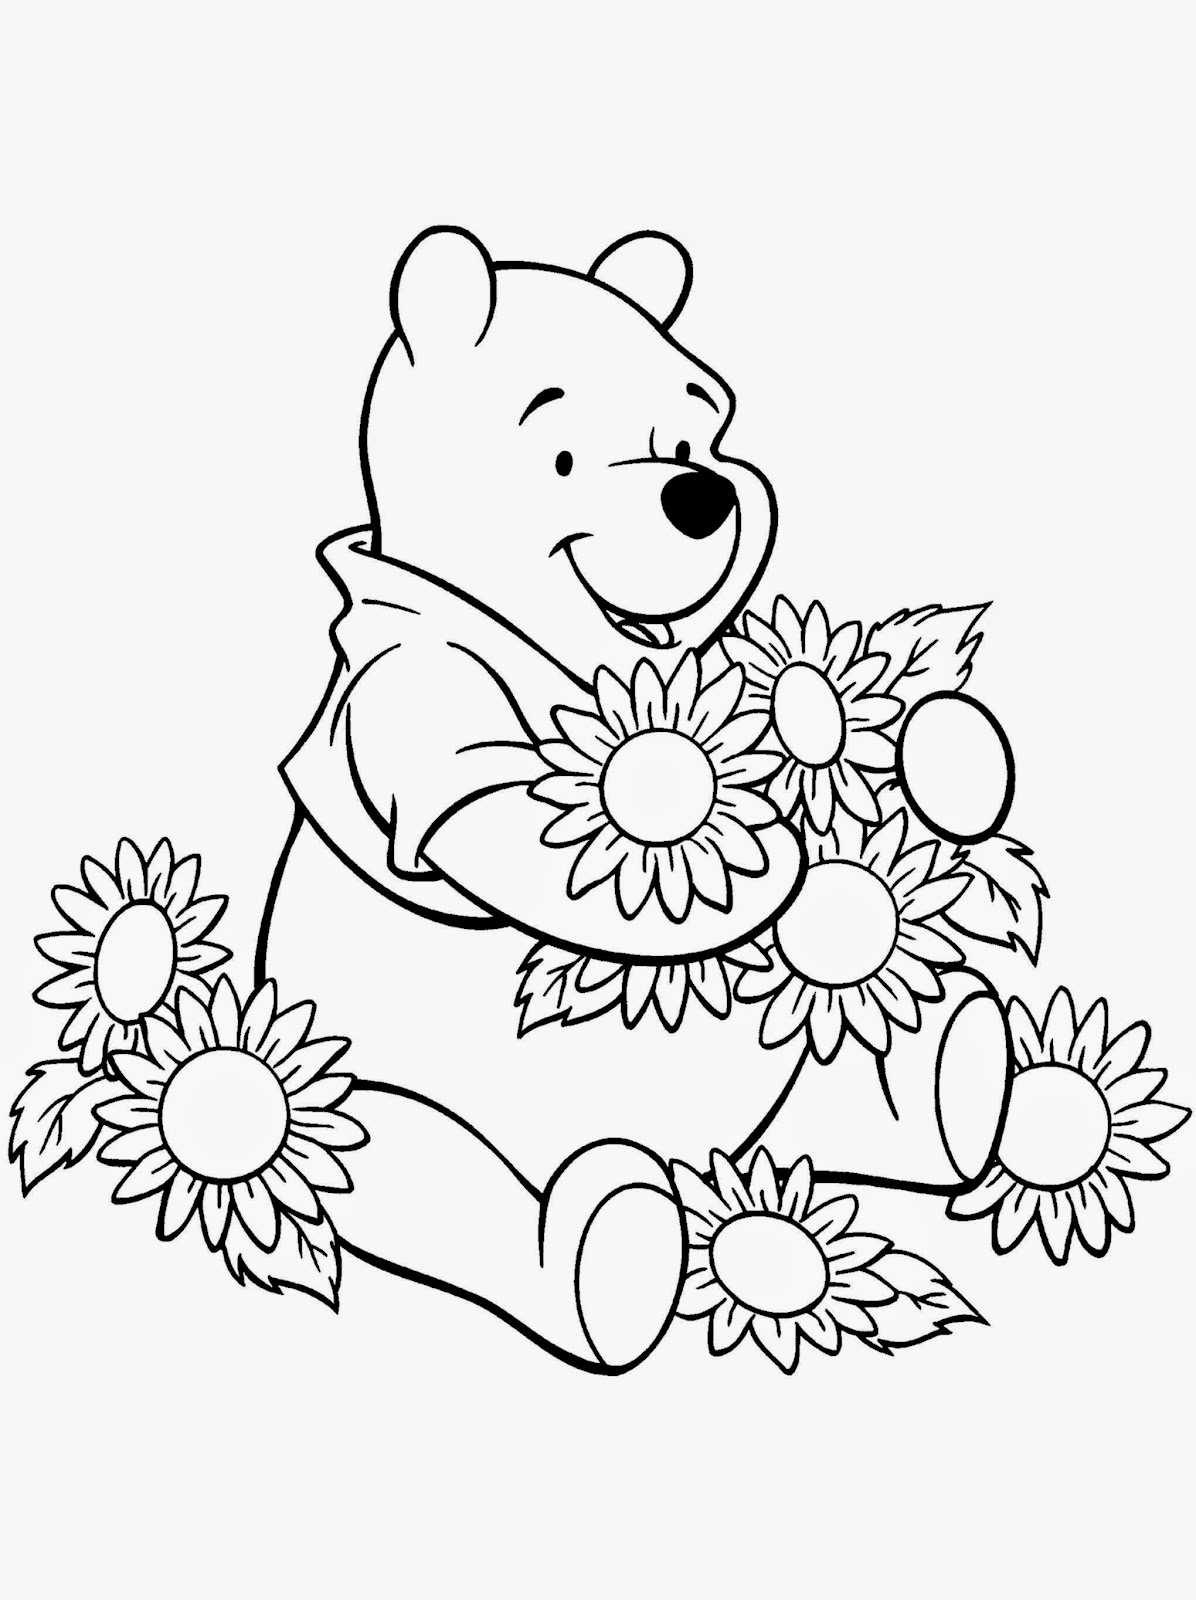 Winnie the pooh coloring sheets free coloring sheet for Pooh coloring page